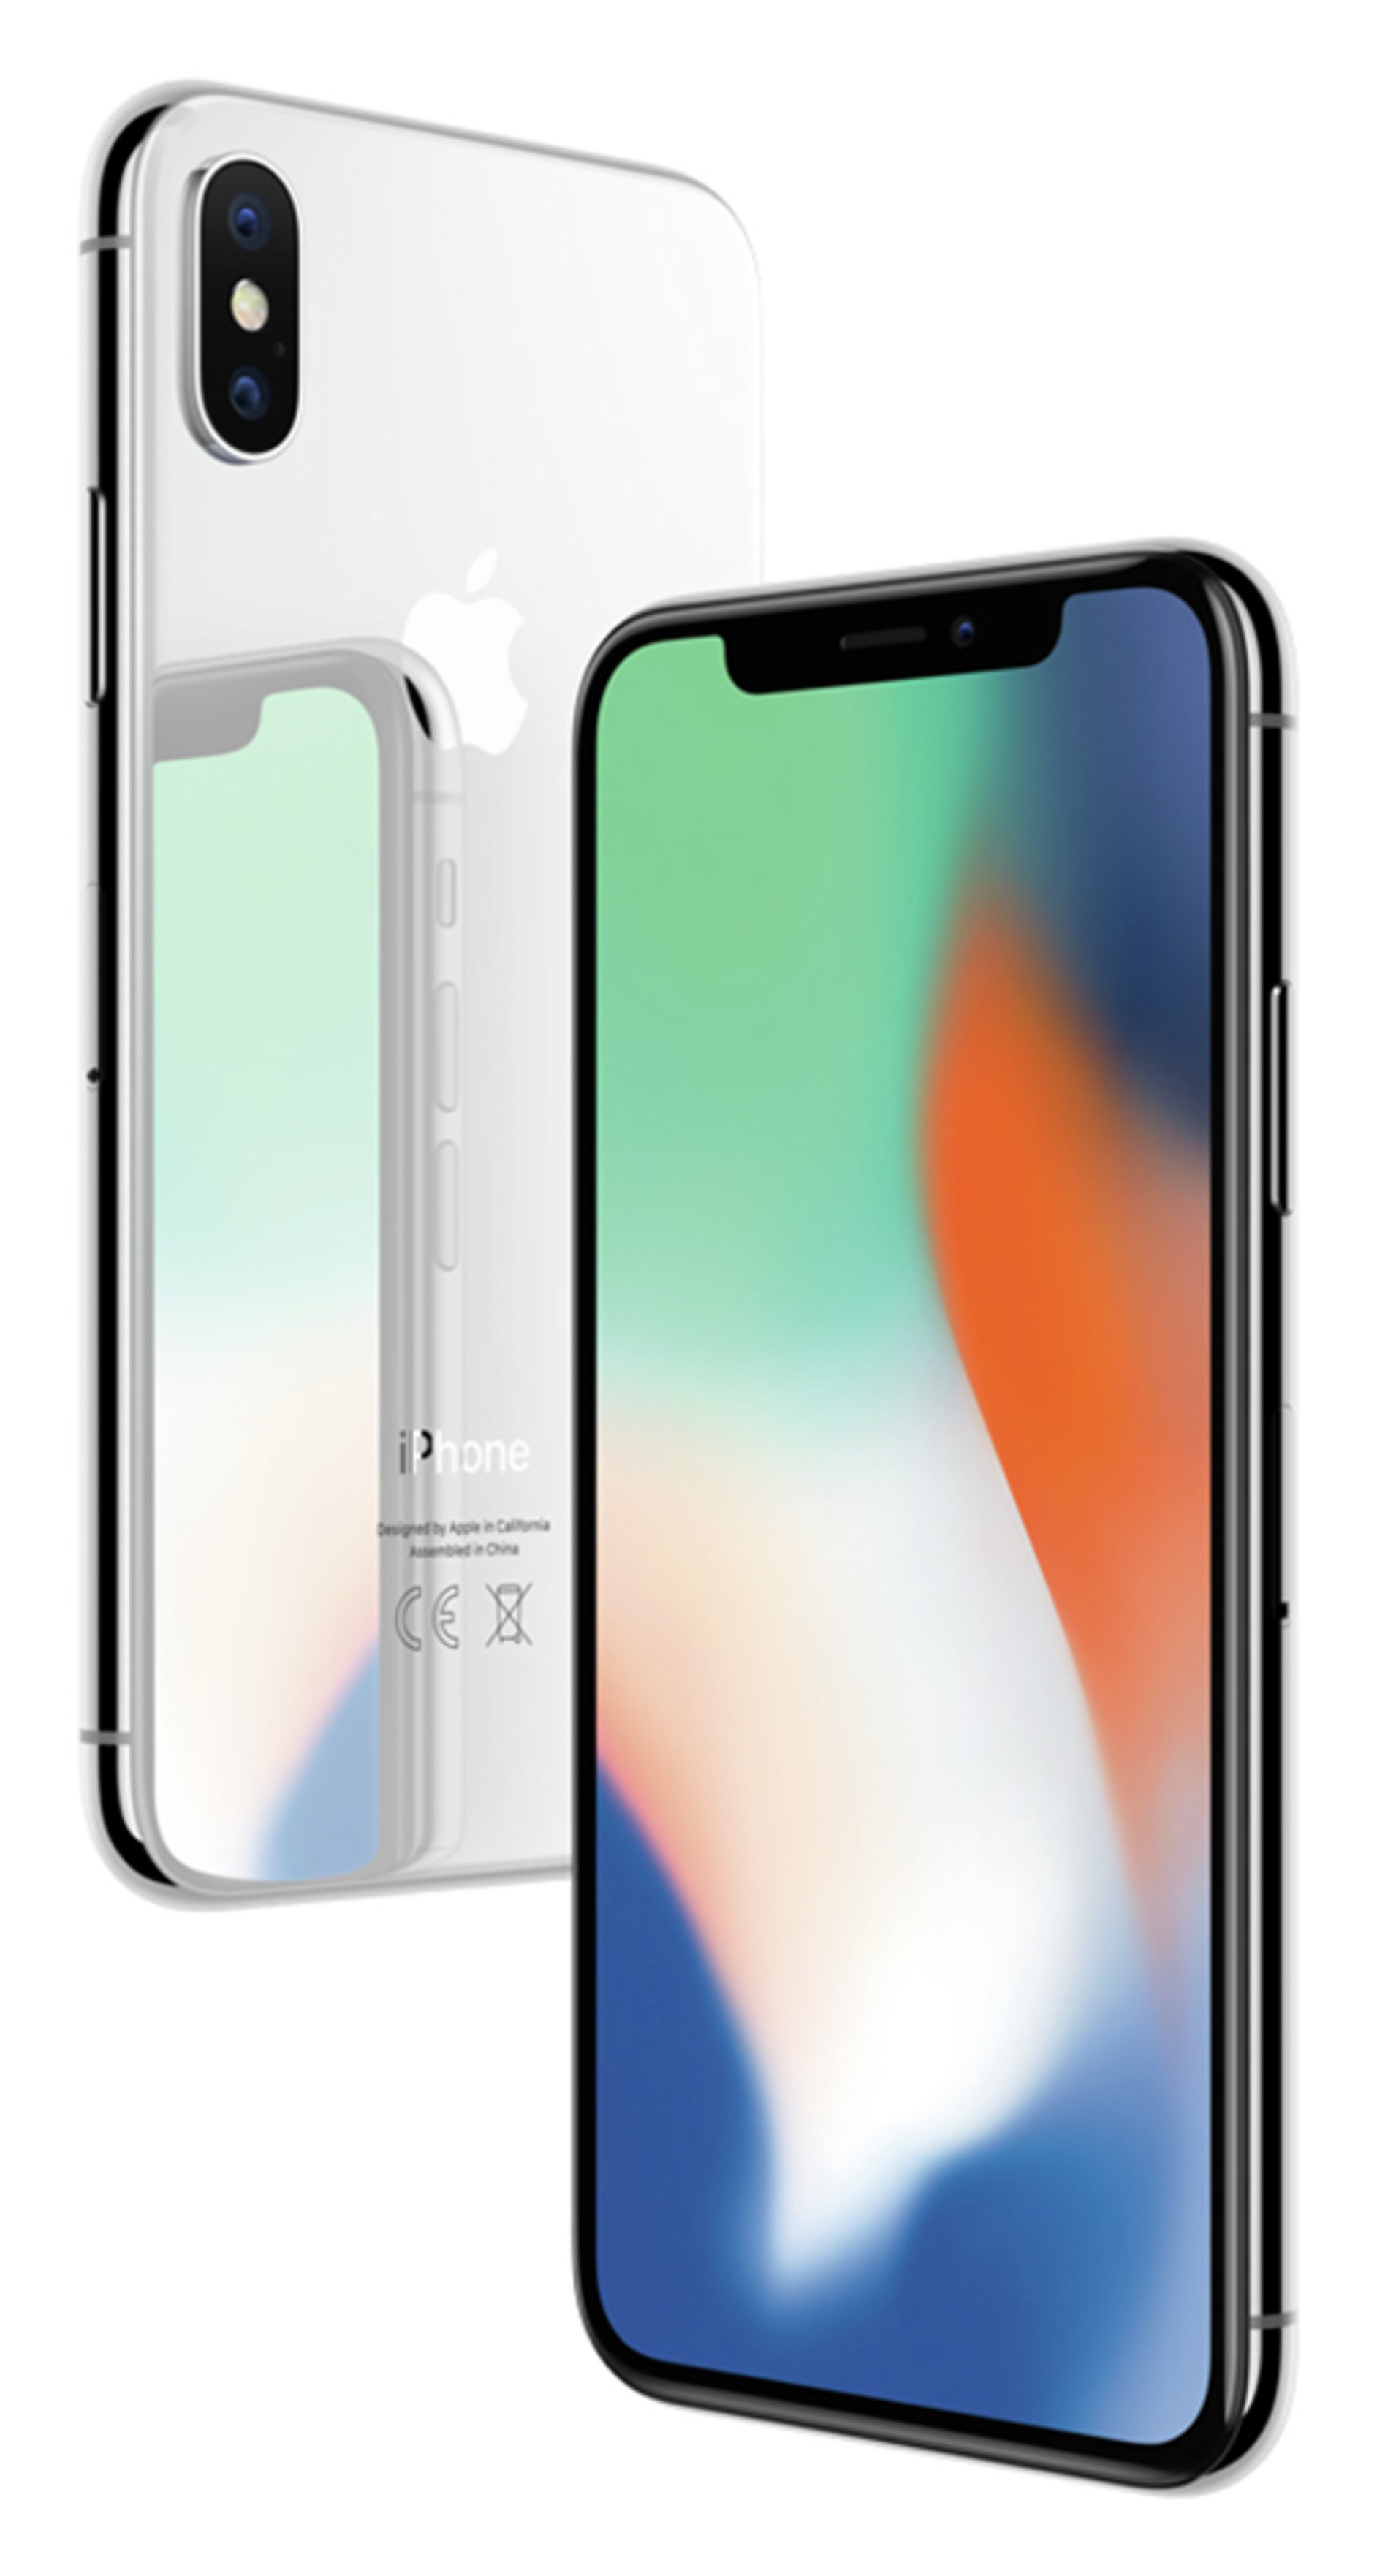 SIM Free iPhone X 64GB Mobile Phone - Silver from Apple